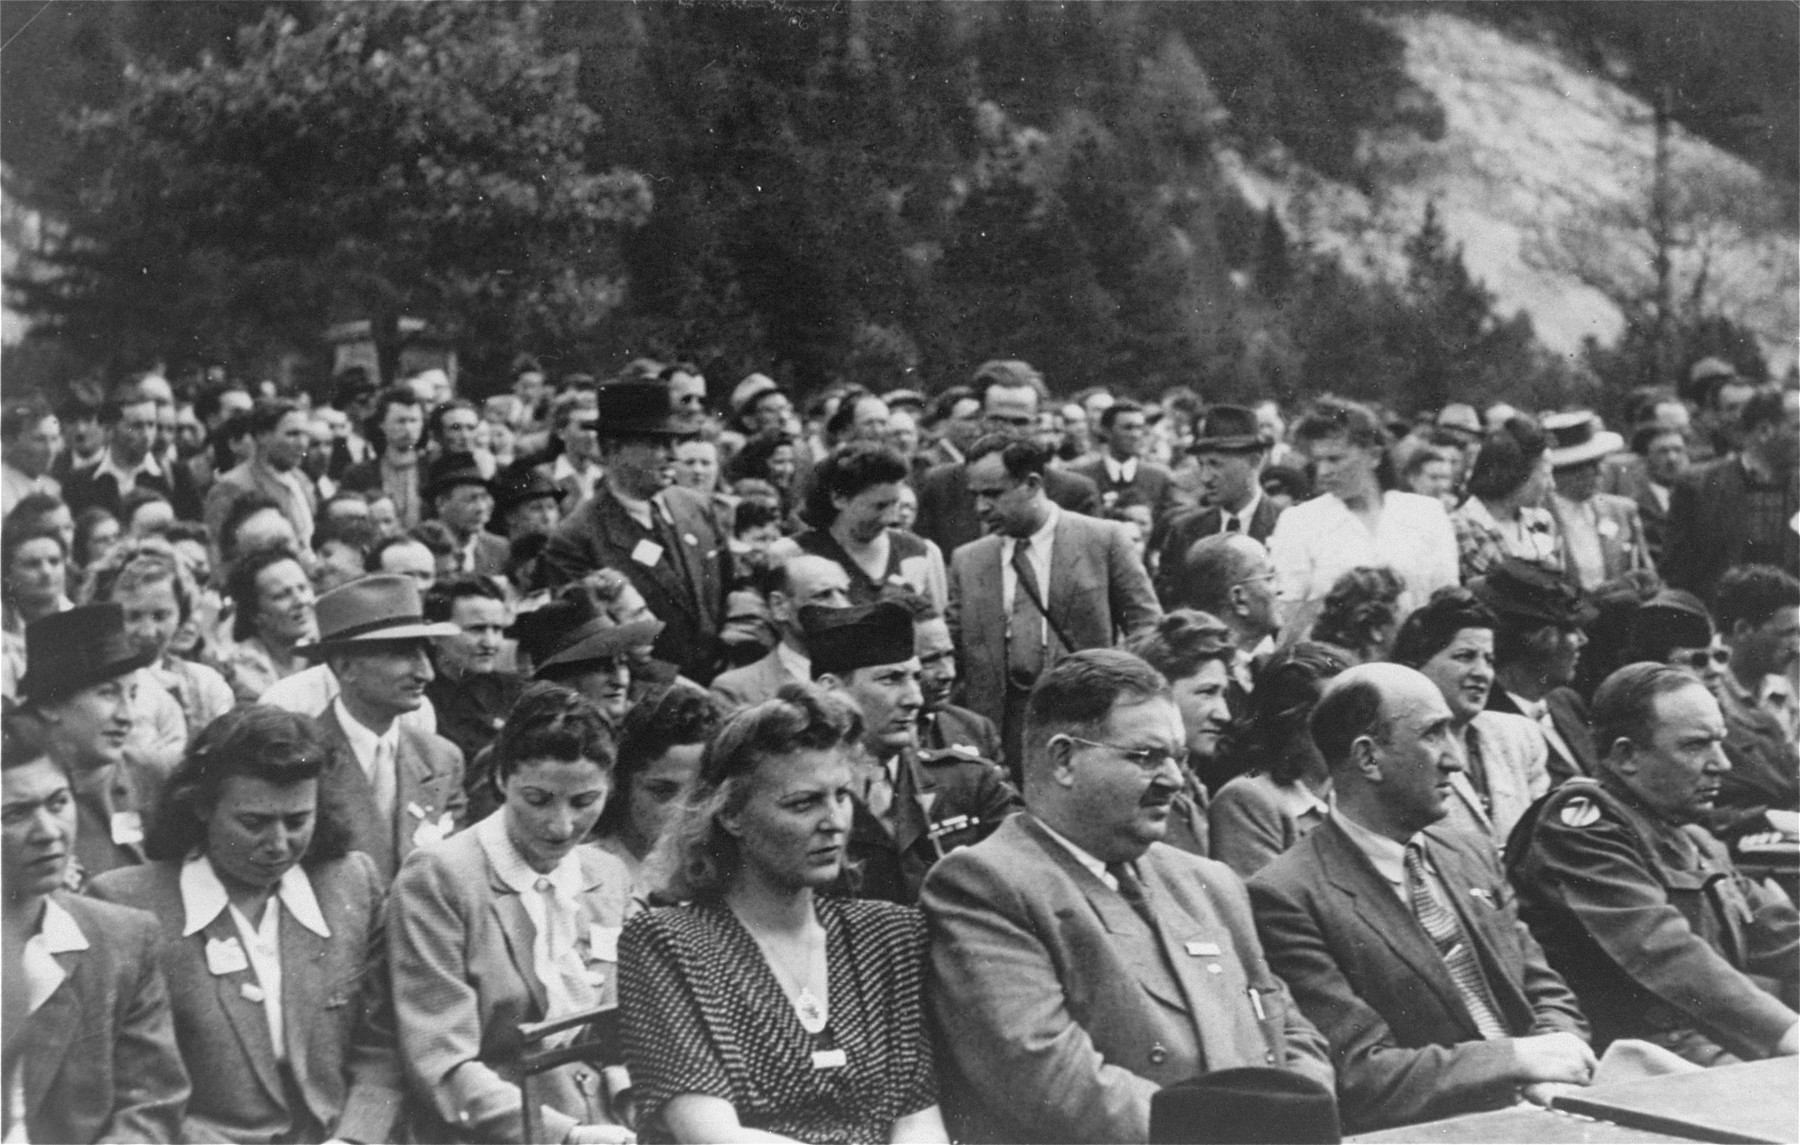 View of the audience at an outdoor meeting of Jewish DPs in the American Zone of Germany held in the Mittenwald displaced persons camp to commemorate the death march from Dachau to Tyrol.   Among those pictured are the American officer serving as the liaison between the American military government and the Central Jewish Committee, and the representative of the local German government.